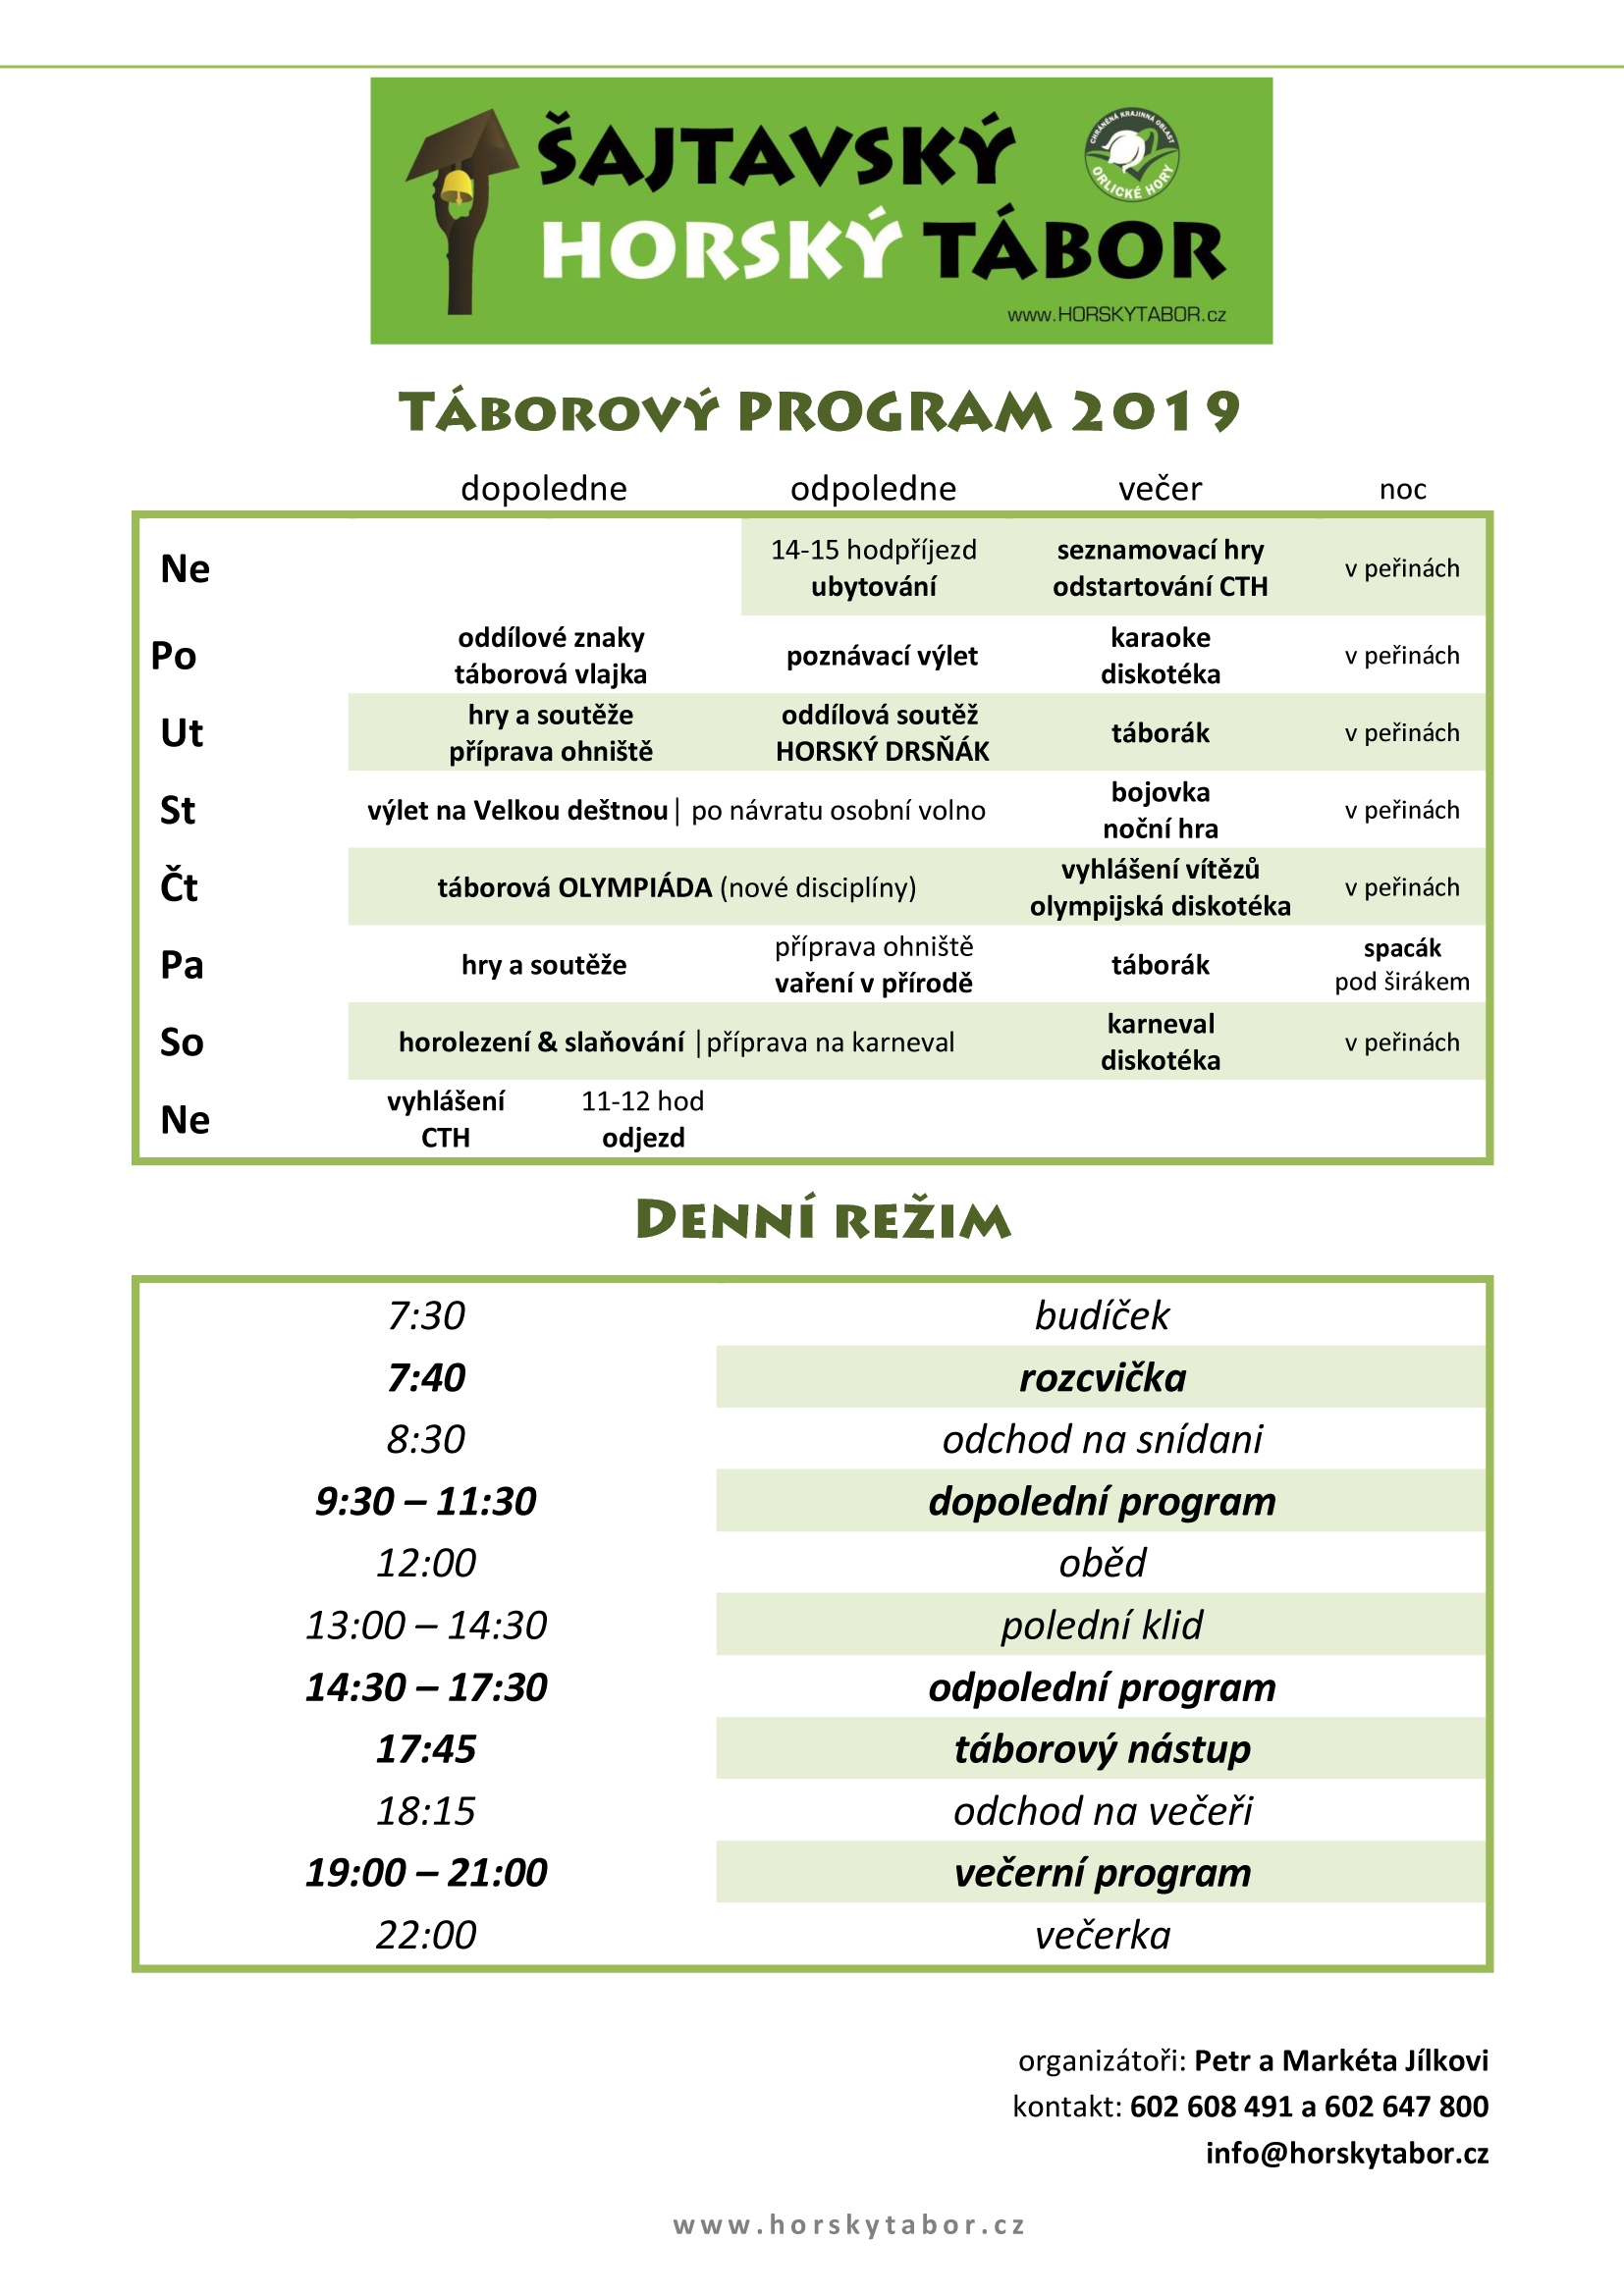 HORSKYtabor 2019 program